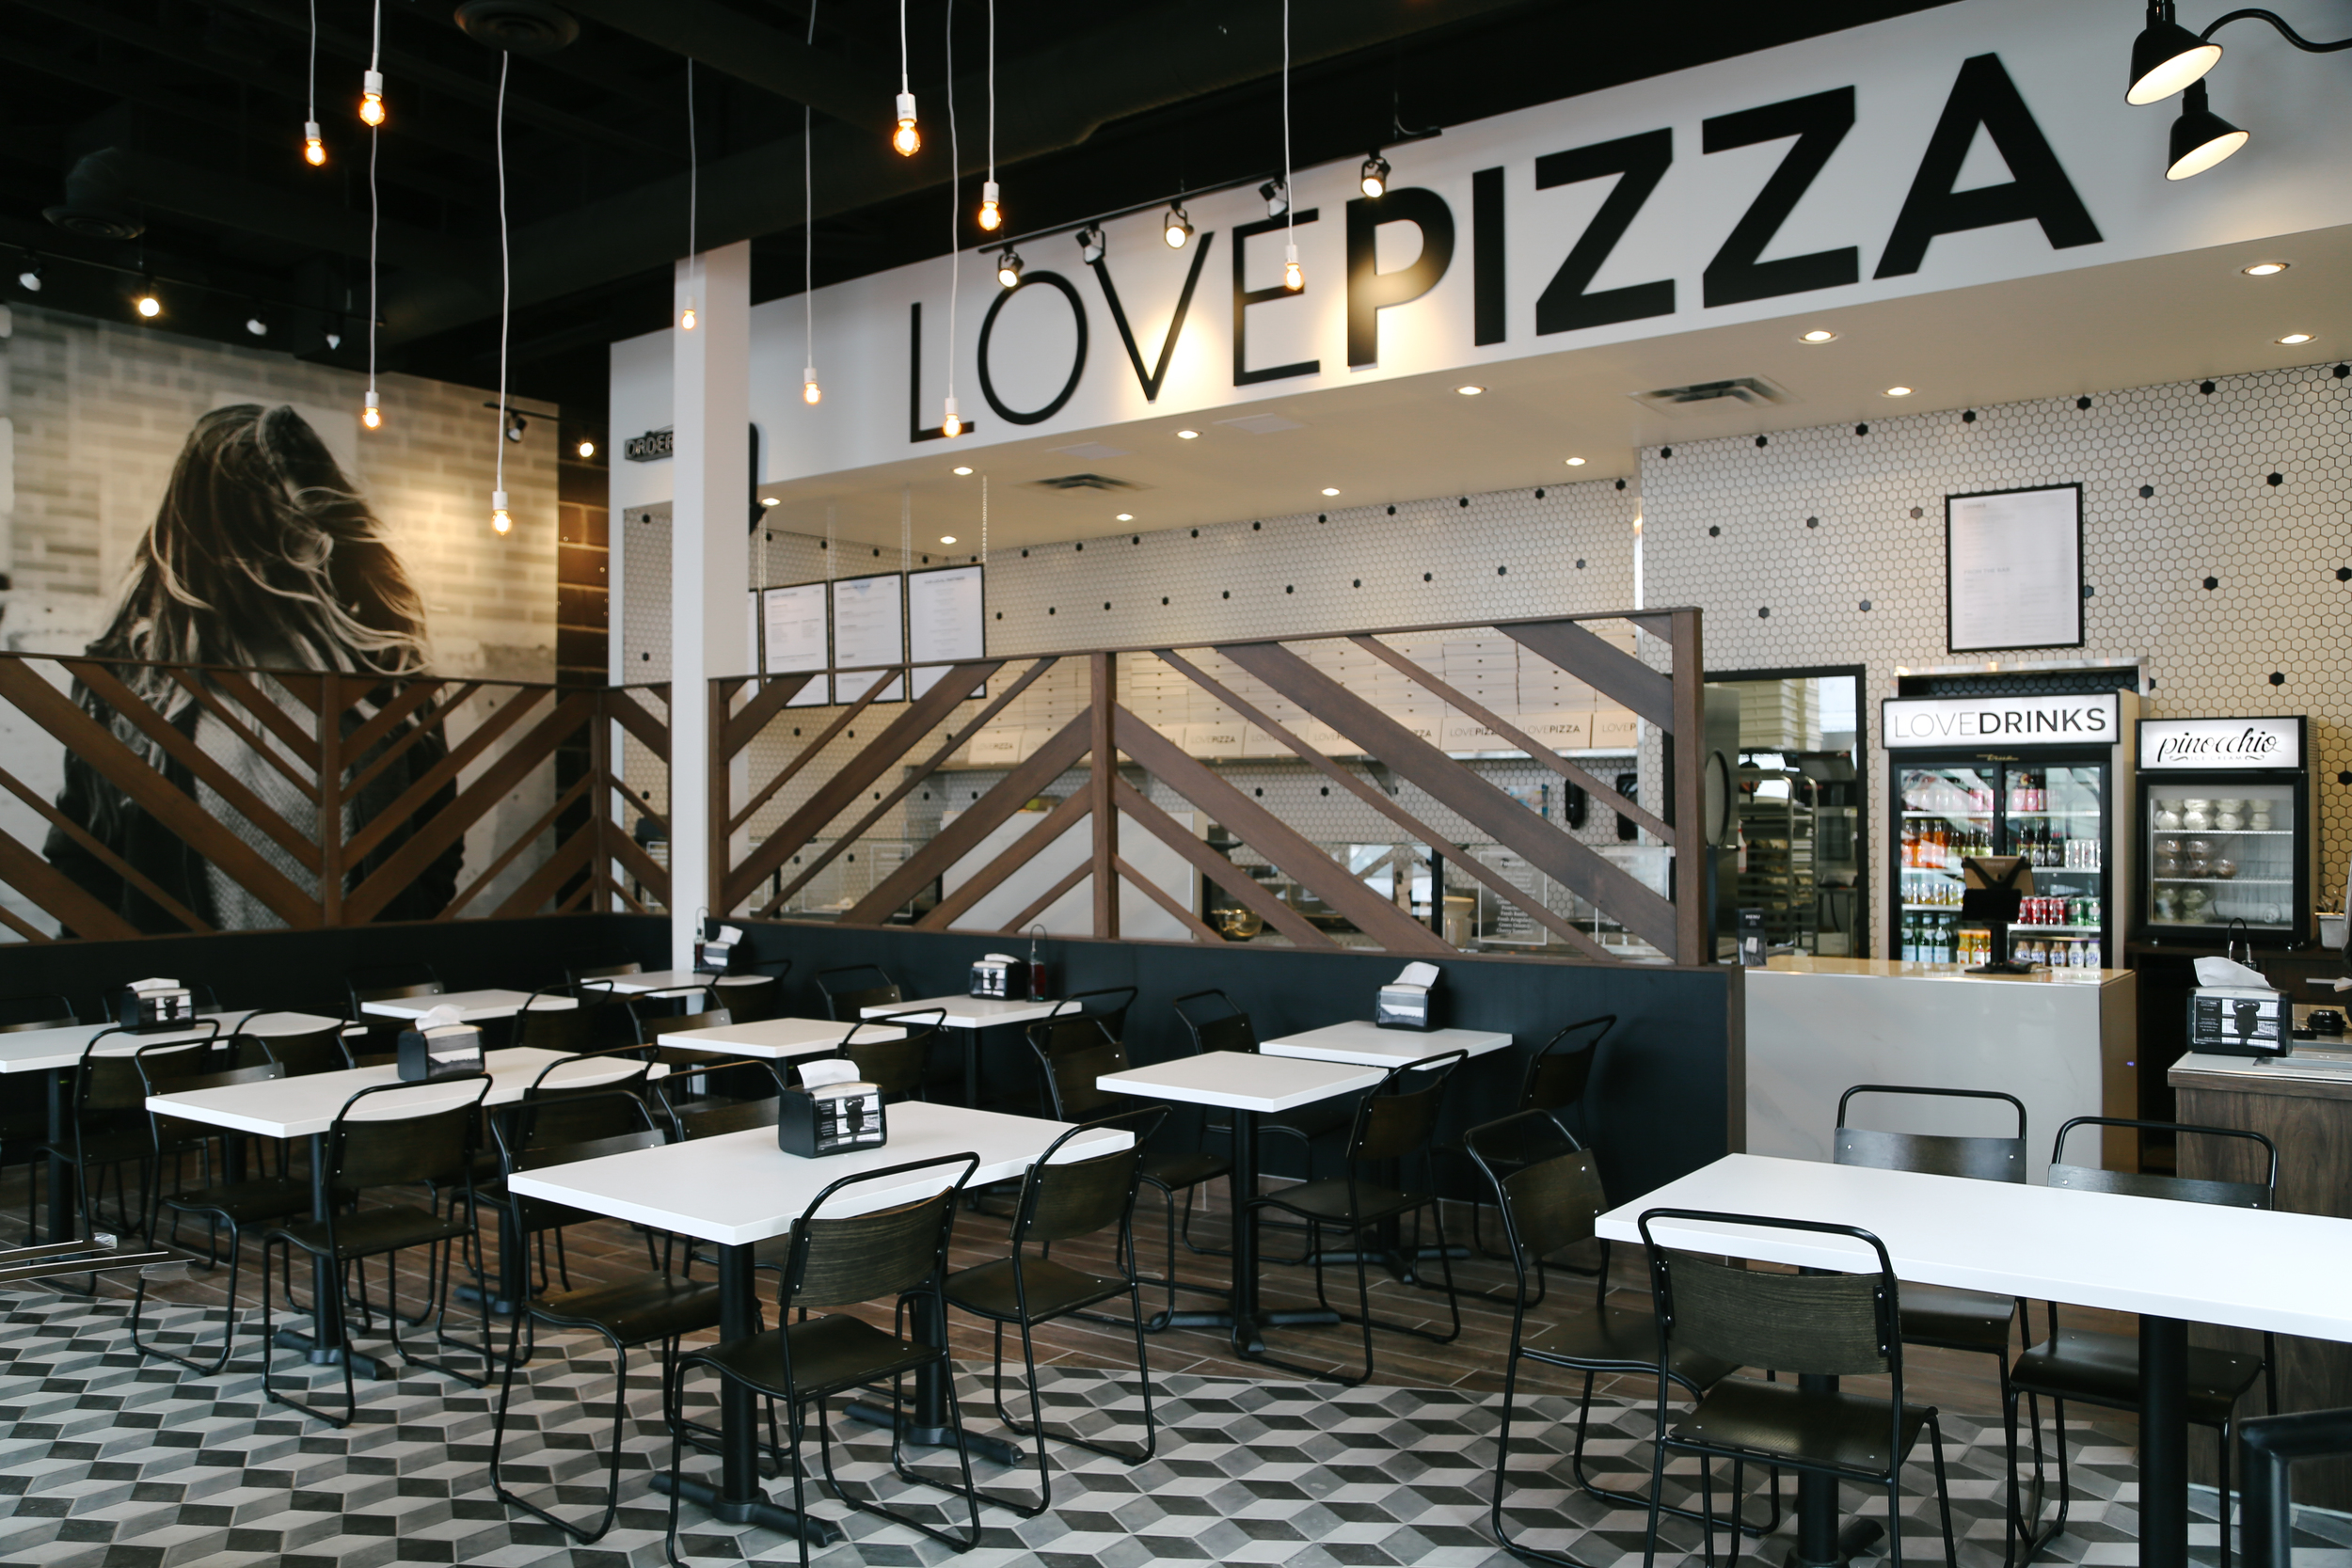 LovePizza-75.jpg